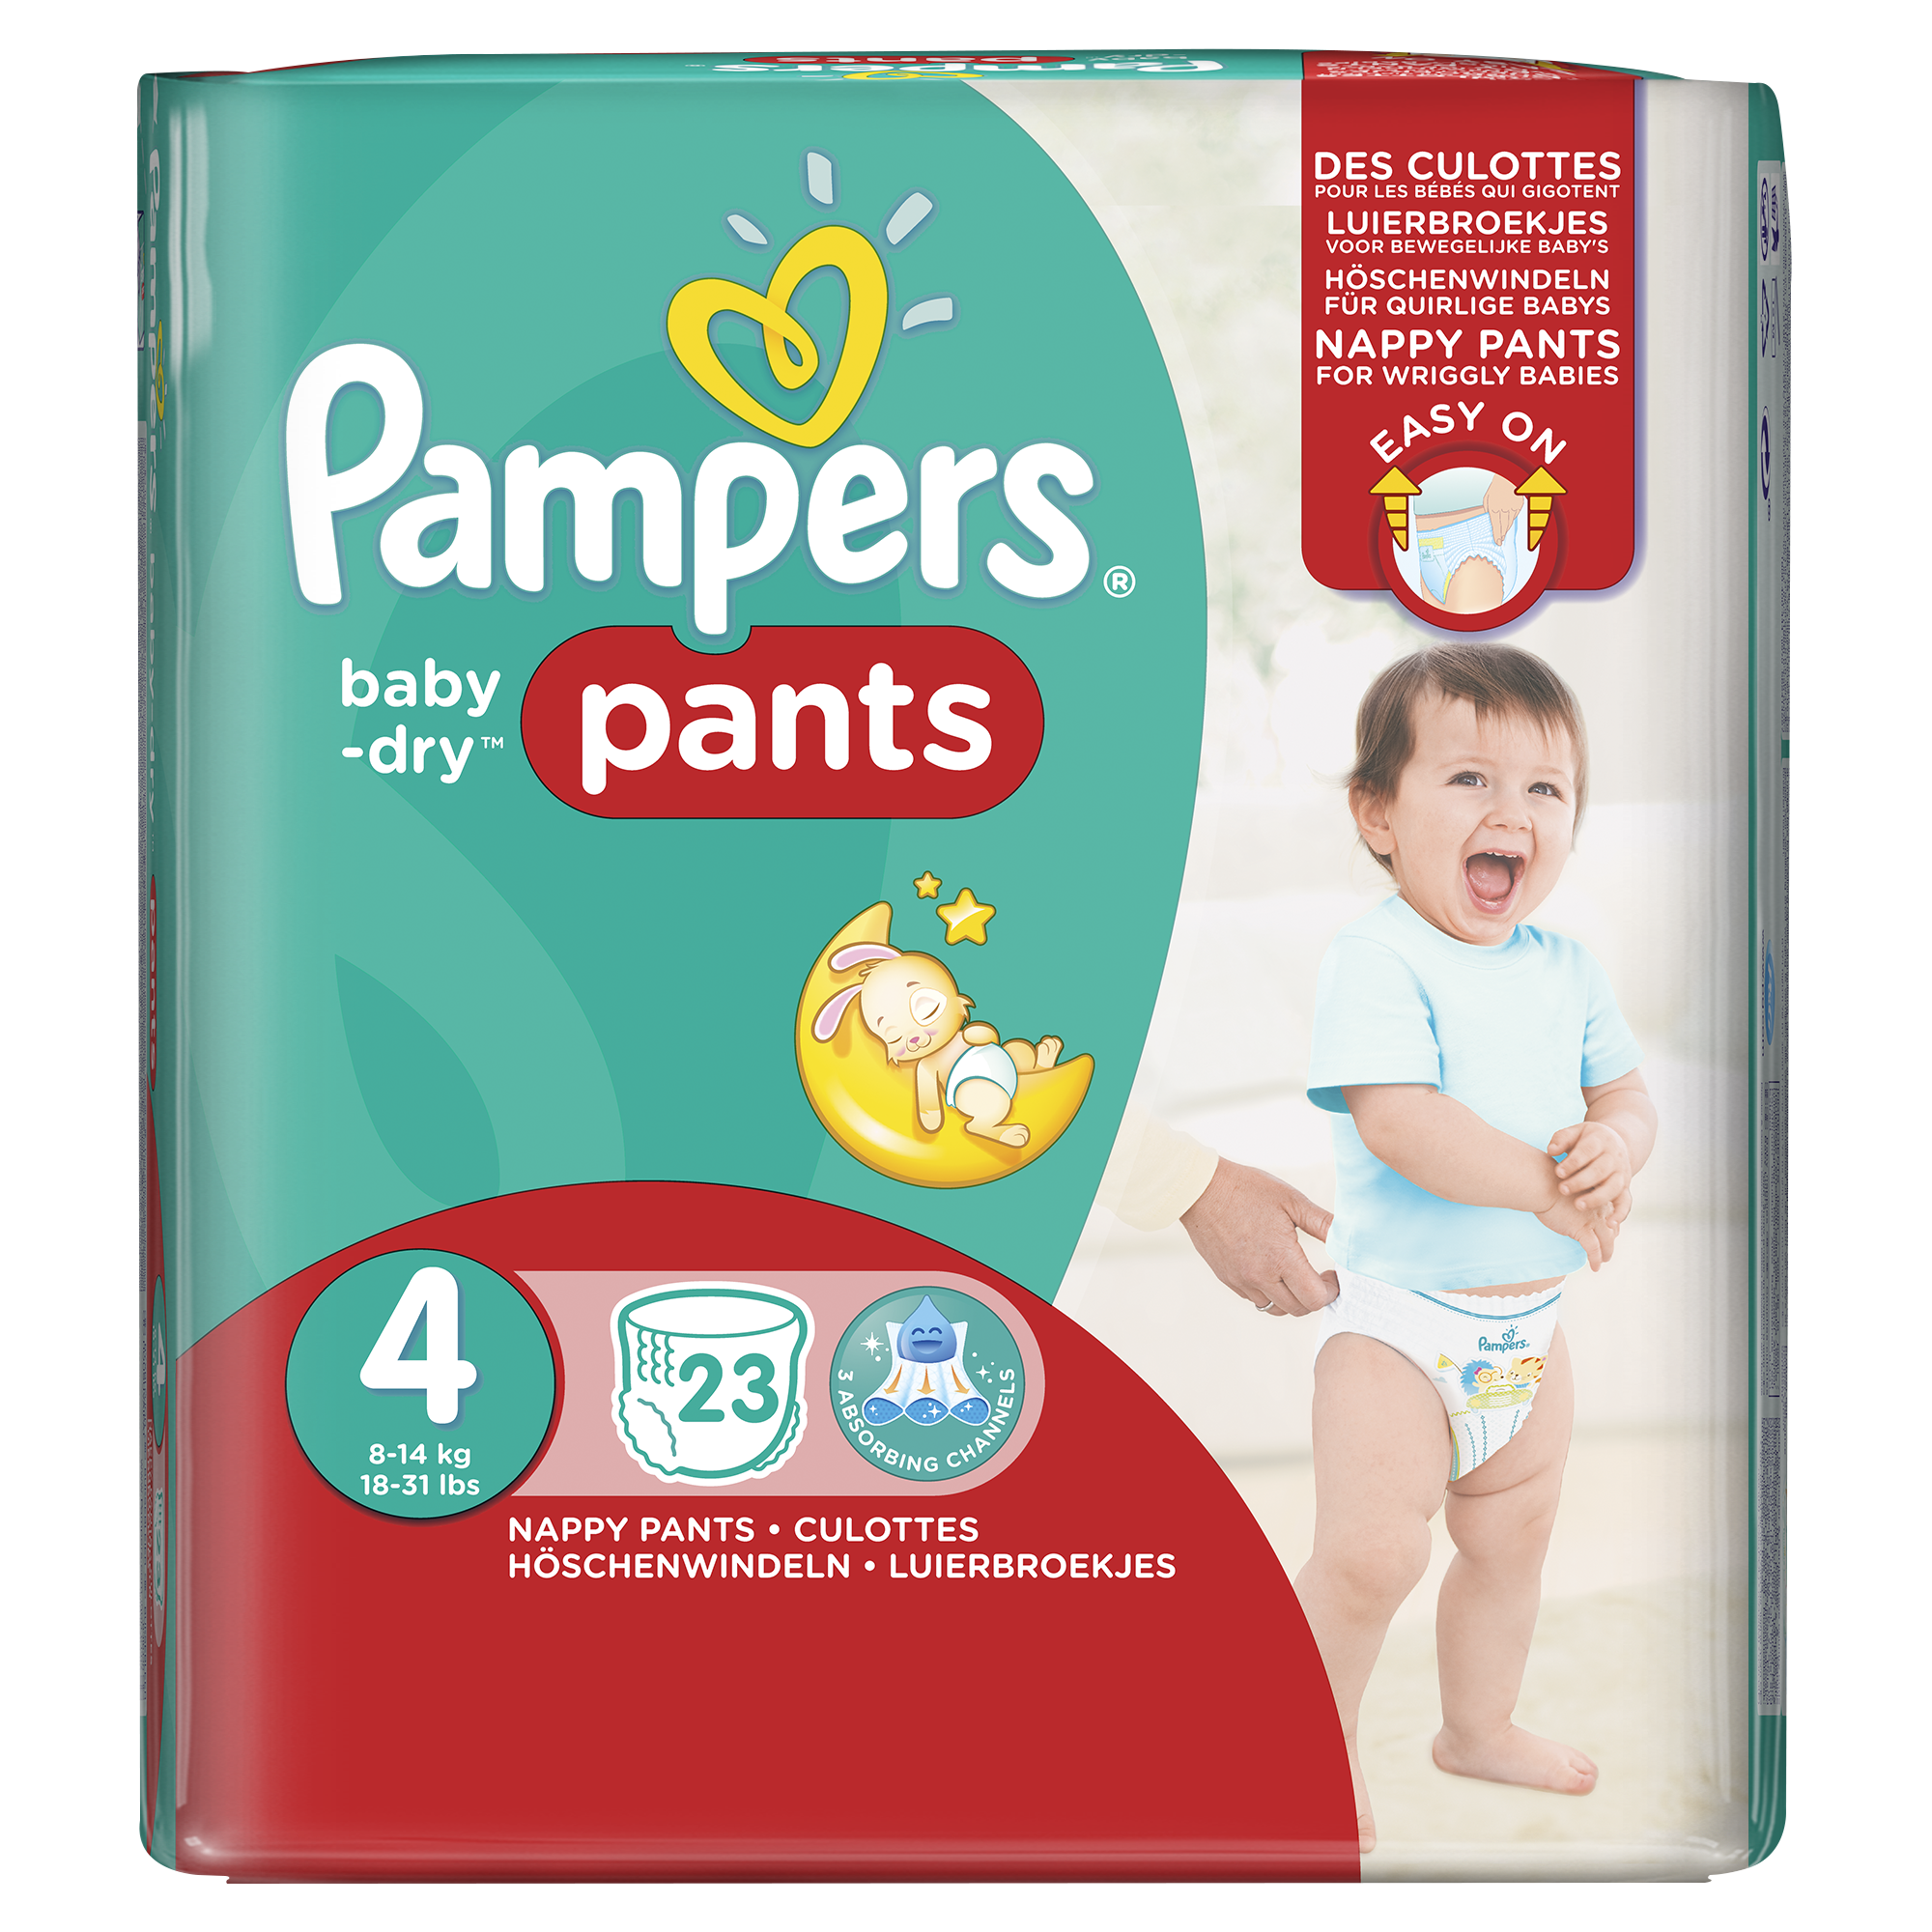 Les Nouvelles Couches Pampers Baby Dry Pants Moi Petite Maman